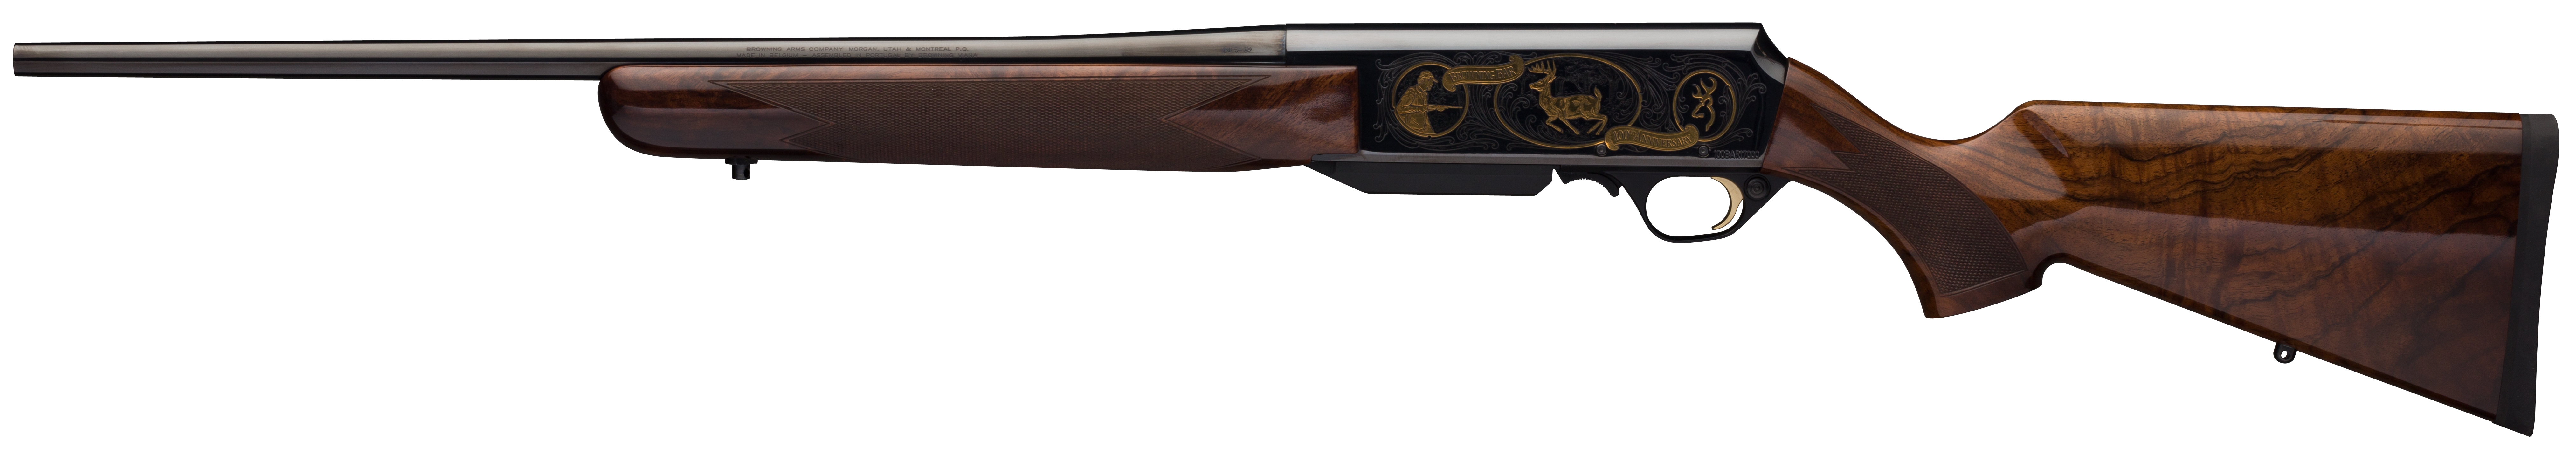 1967 browning bar